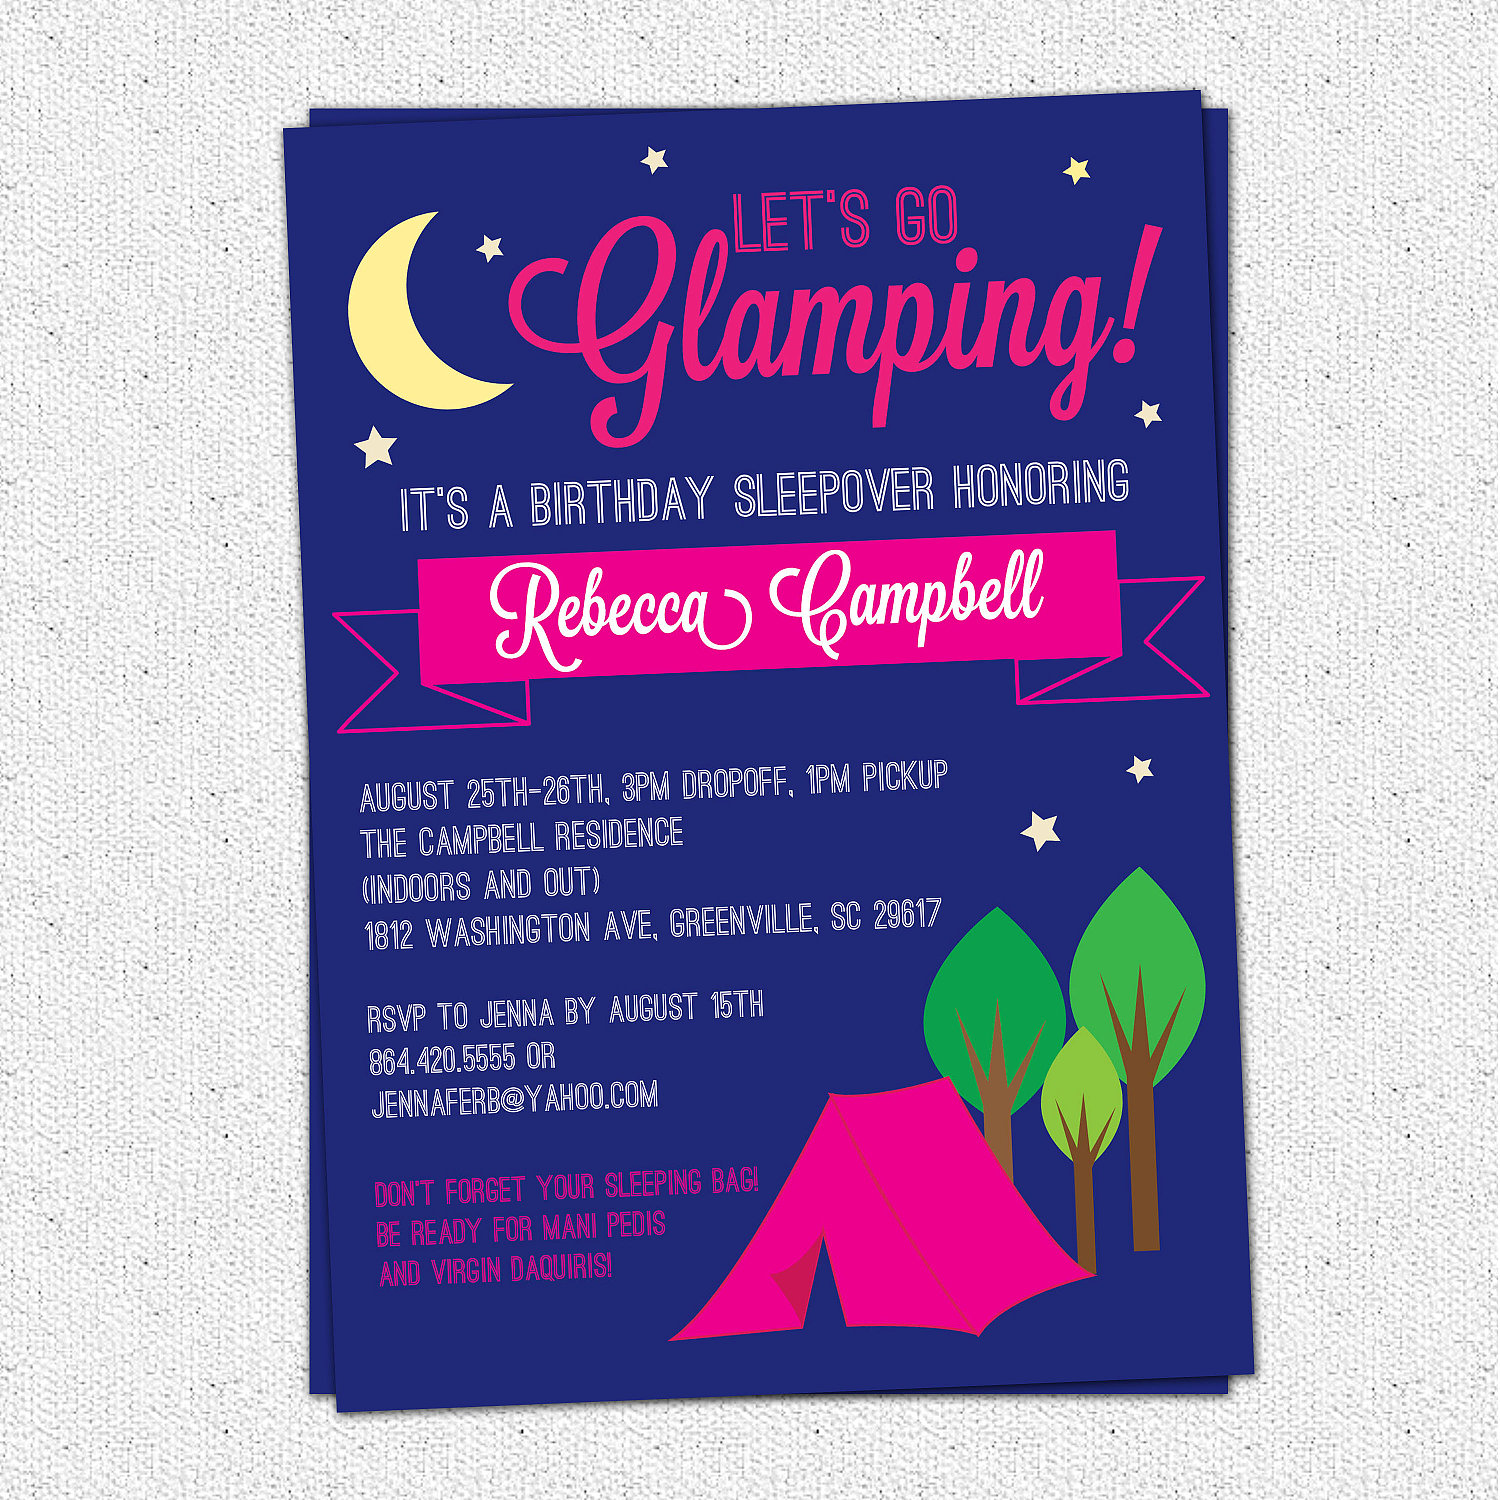 Glamping invitations glam glamour camping birthday bachelorette glamping invitations glam glamour camping birthday bachelorette girl set of 10 filmwisefo